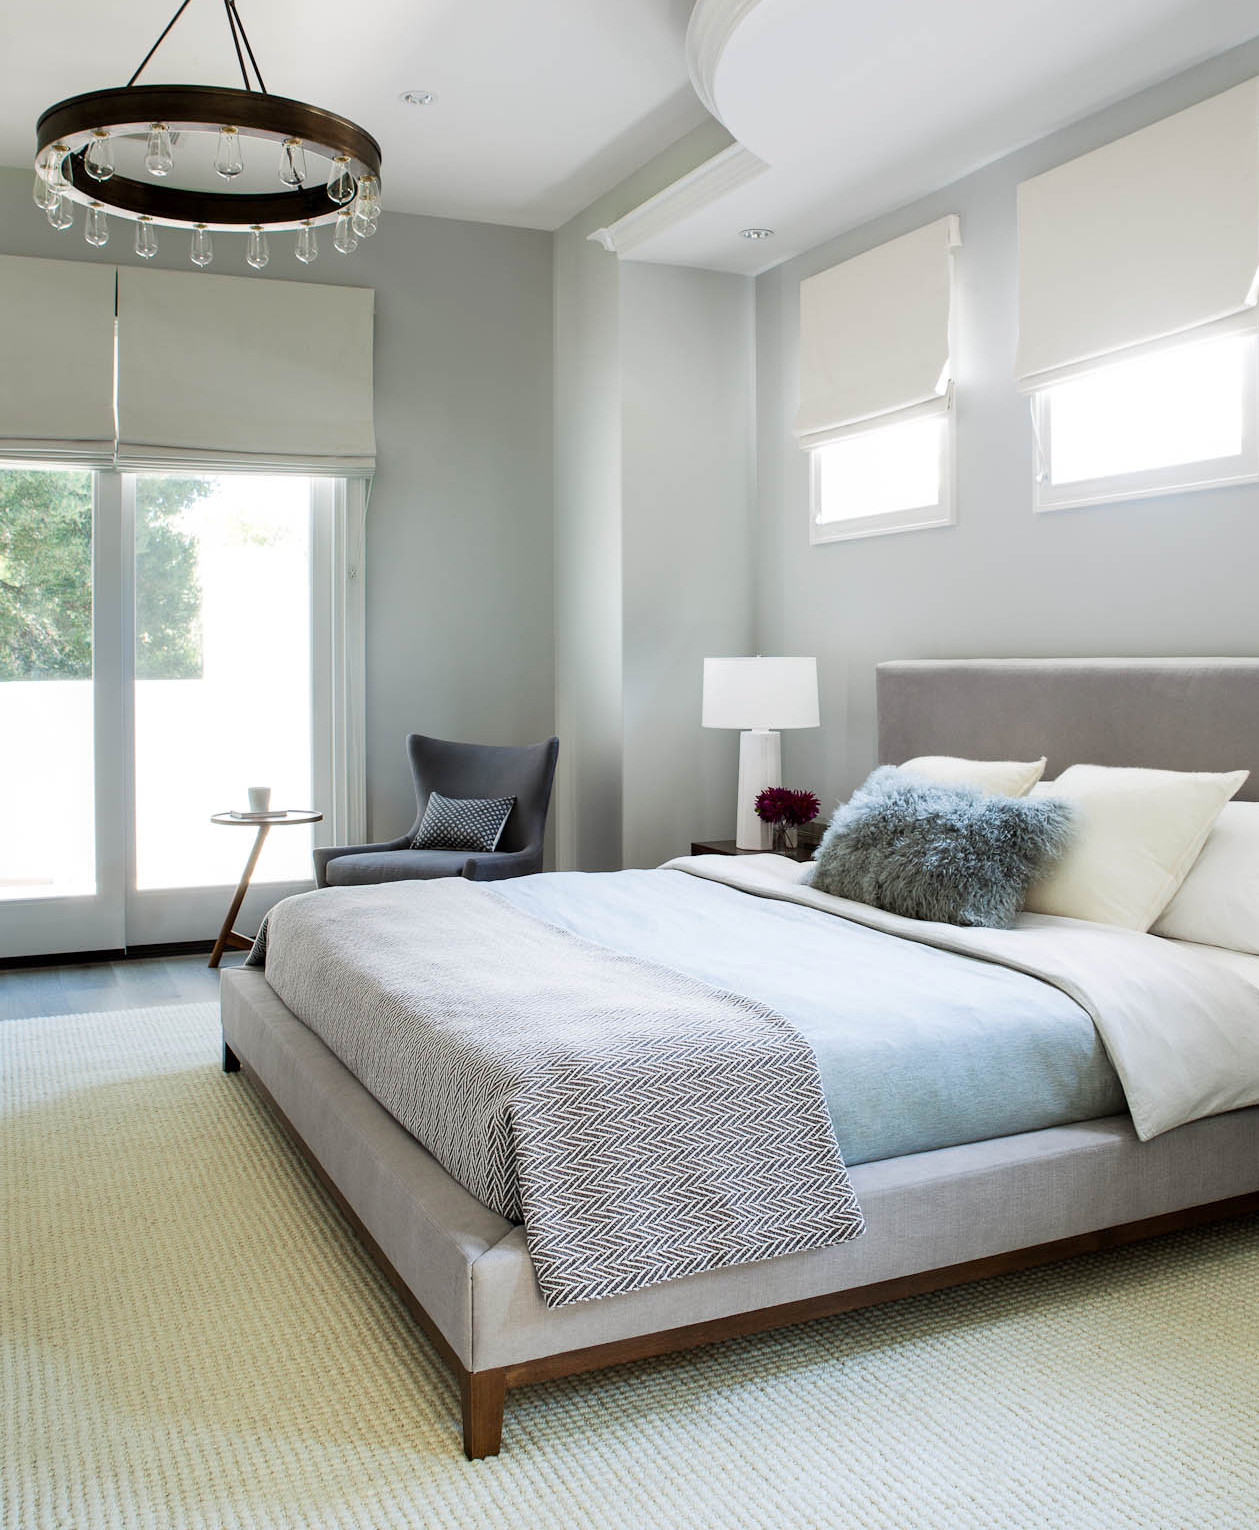 Best ideas about Bedroom Design Ideas . Save or Pin Bedroom Ideas 52 Modern Design Ideas for your Bedroom Now.